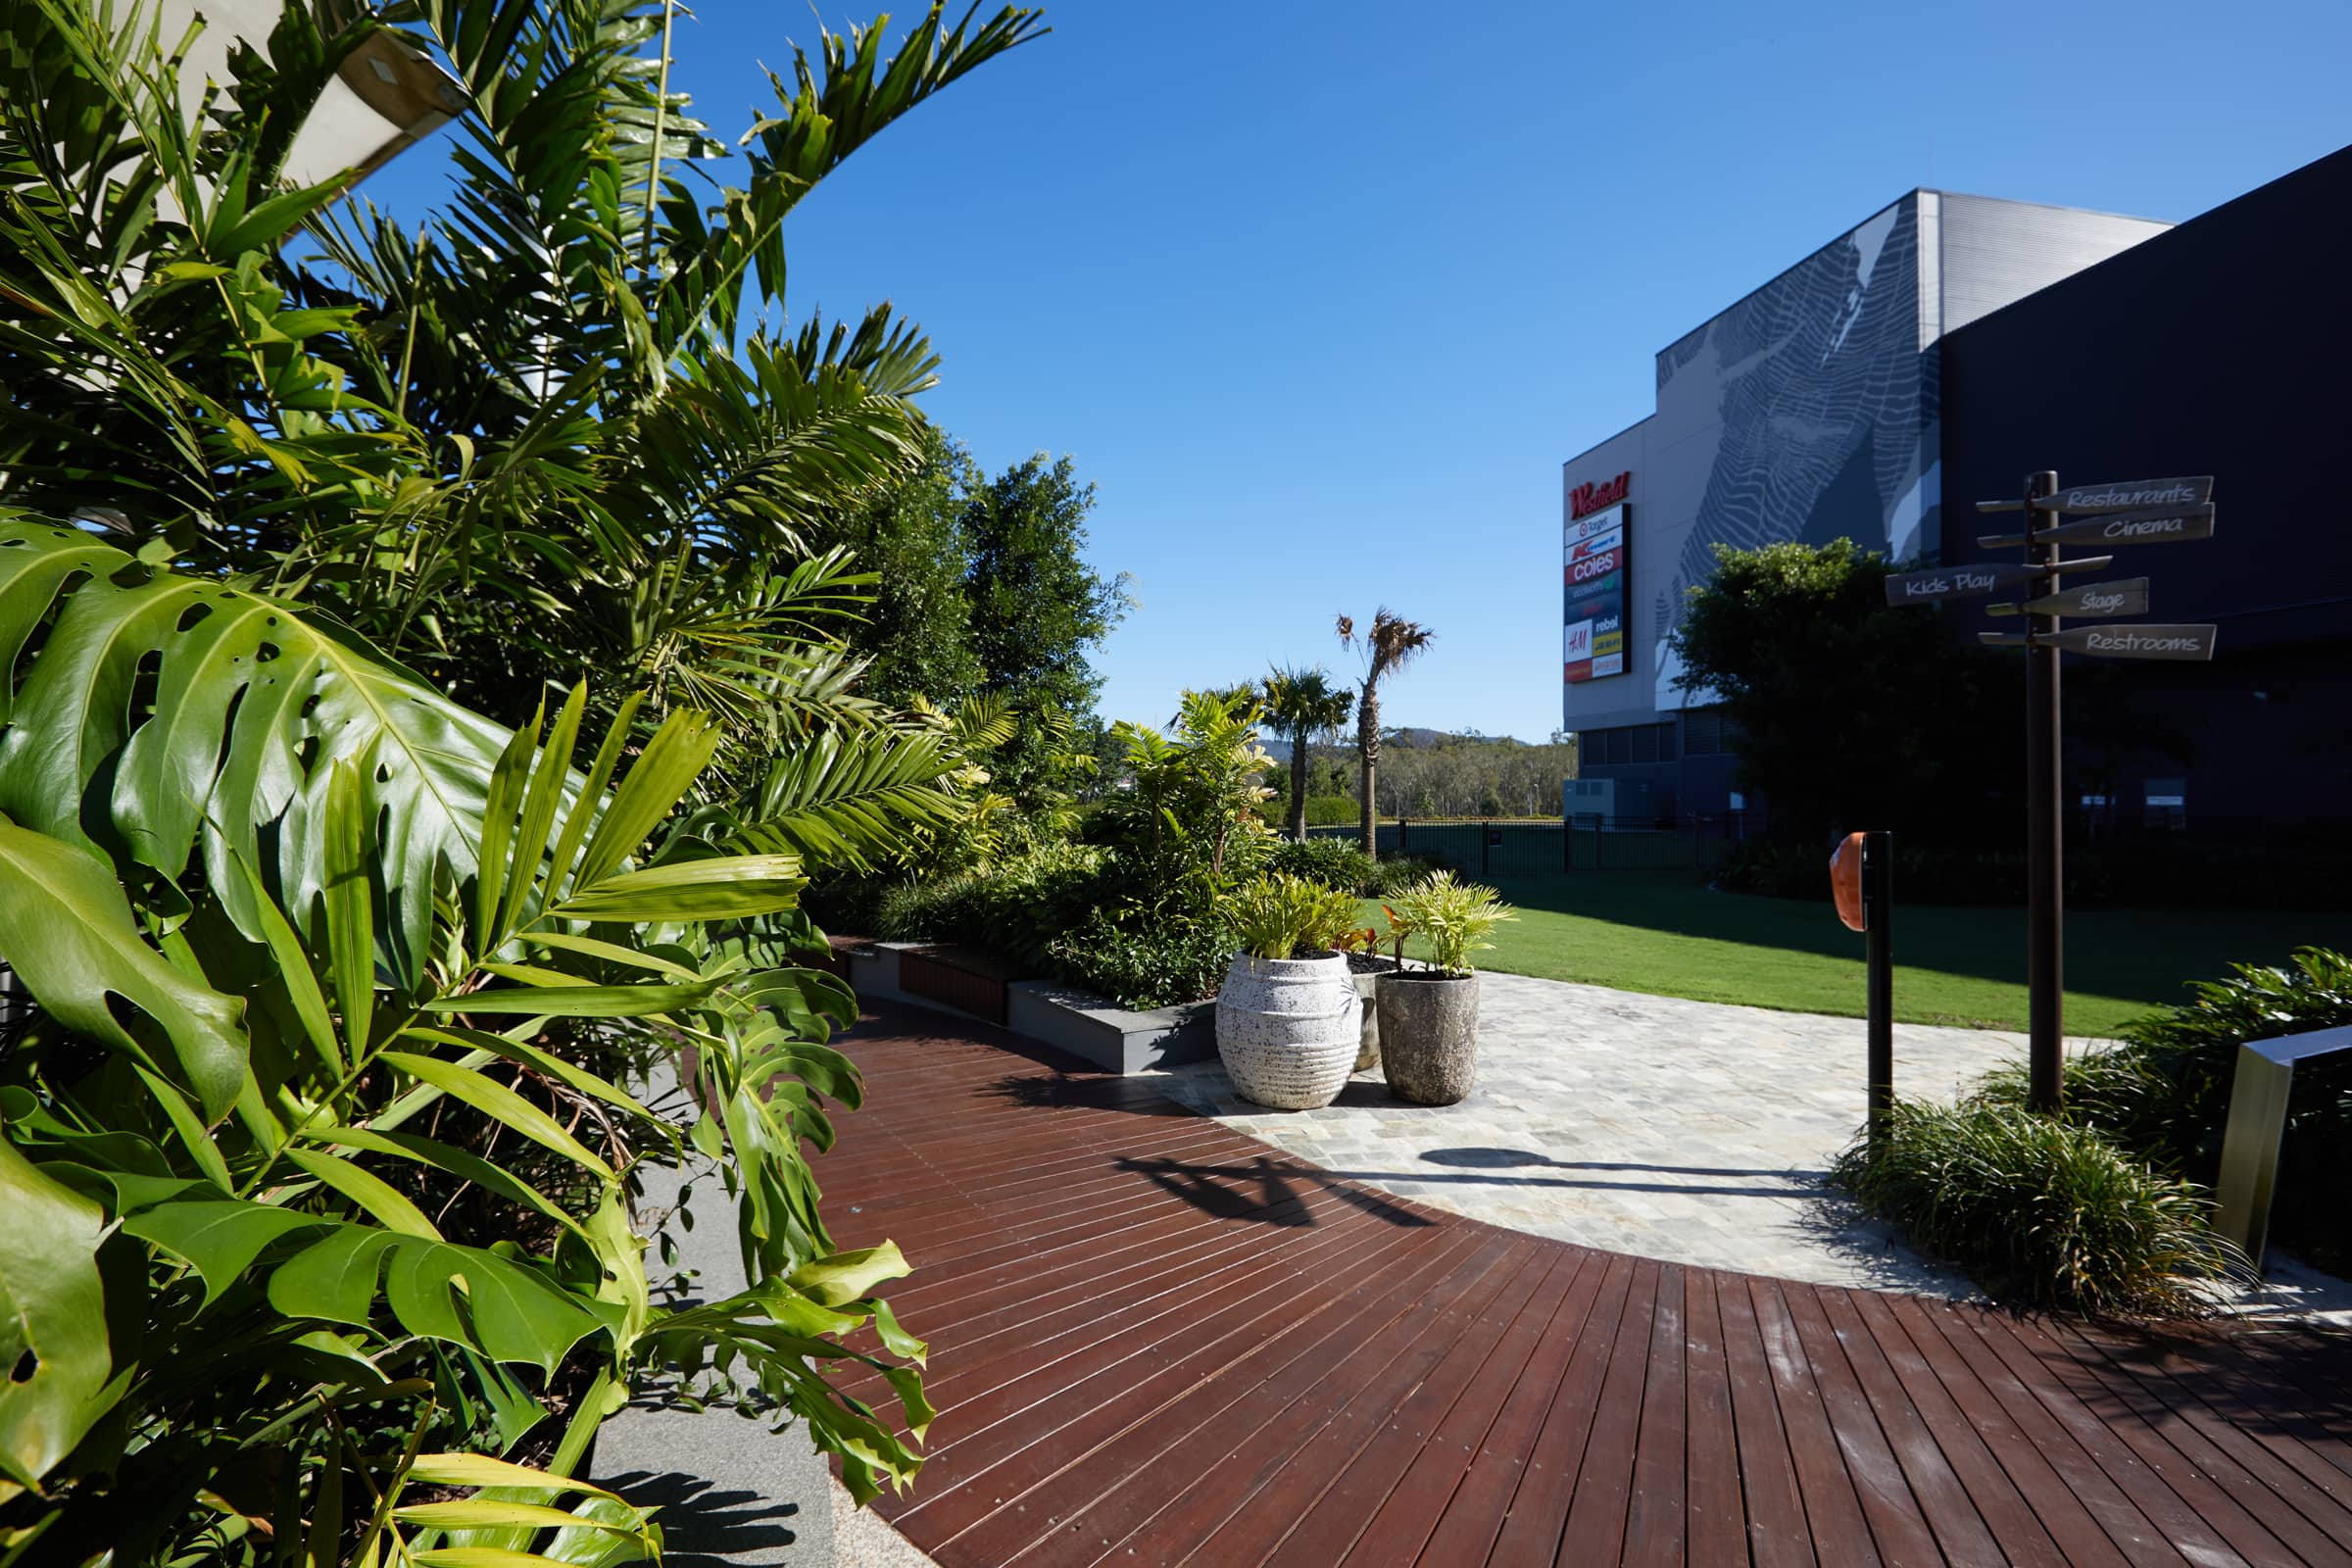 A professional photograph of a boardwalk in the outdoor area of retail shopping centre. The boardwalk has garden beds and potted plants all along it, with a Westfield sign in the background.